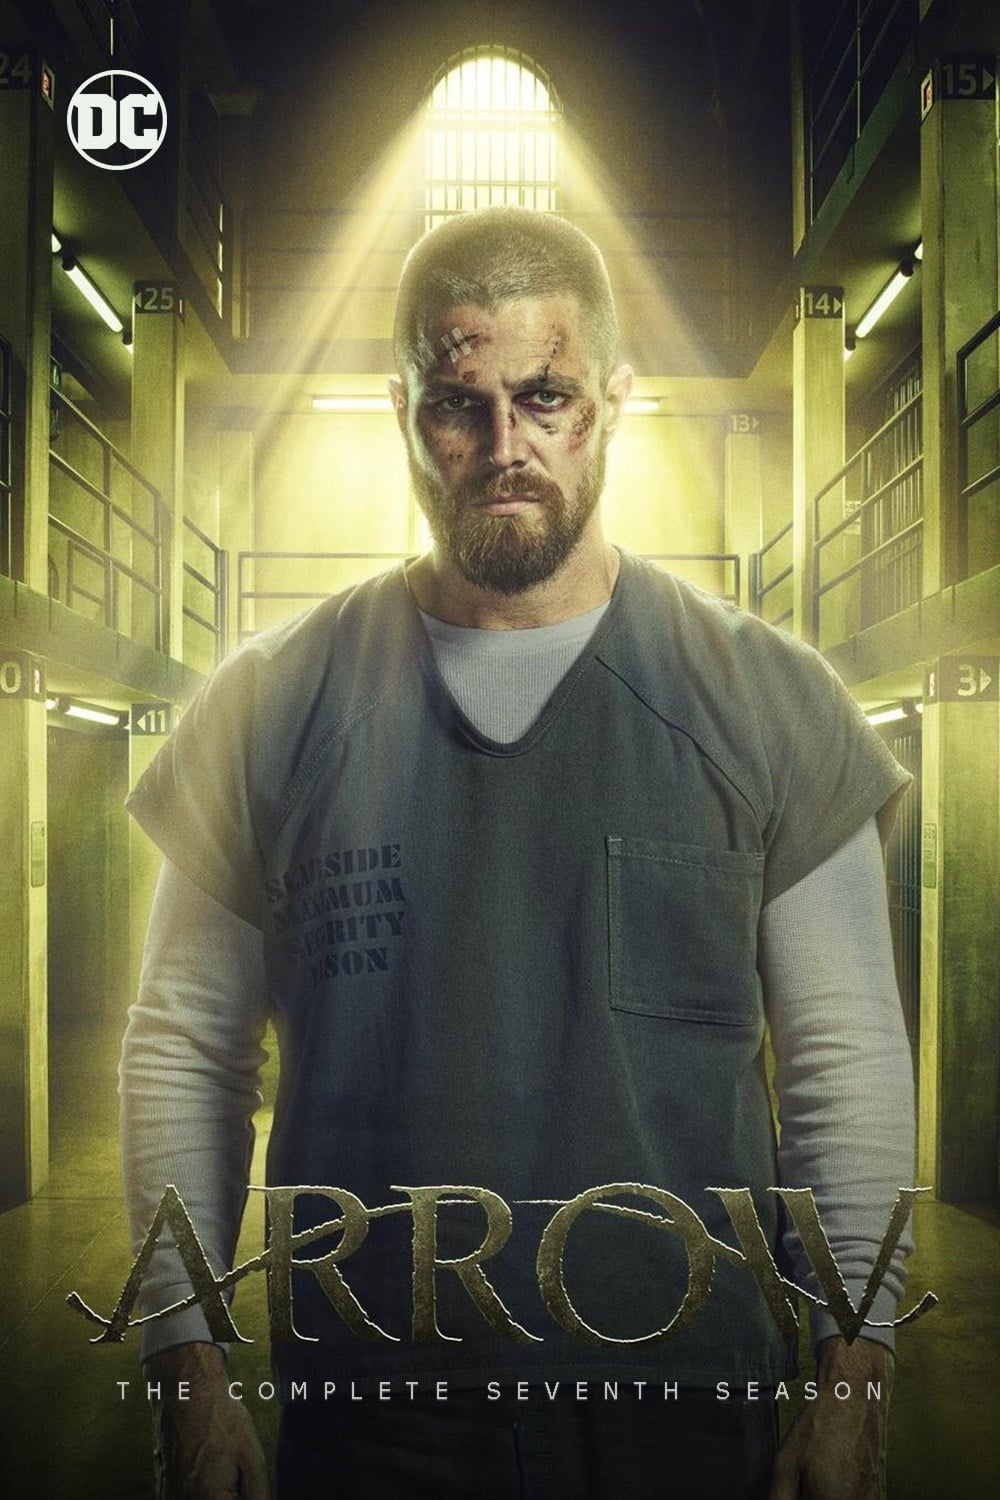 Arrow Season 7 Complete